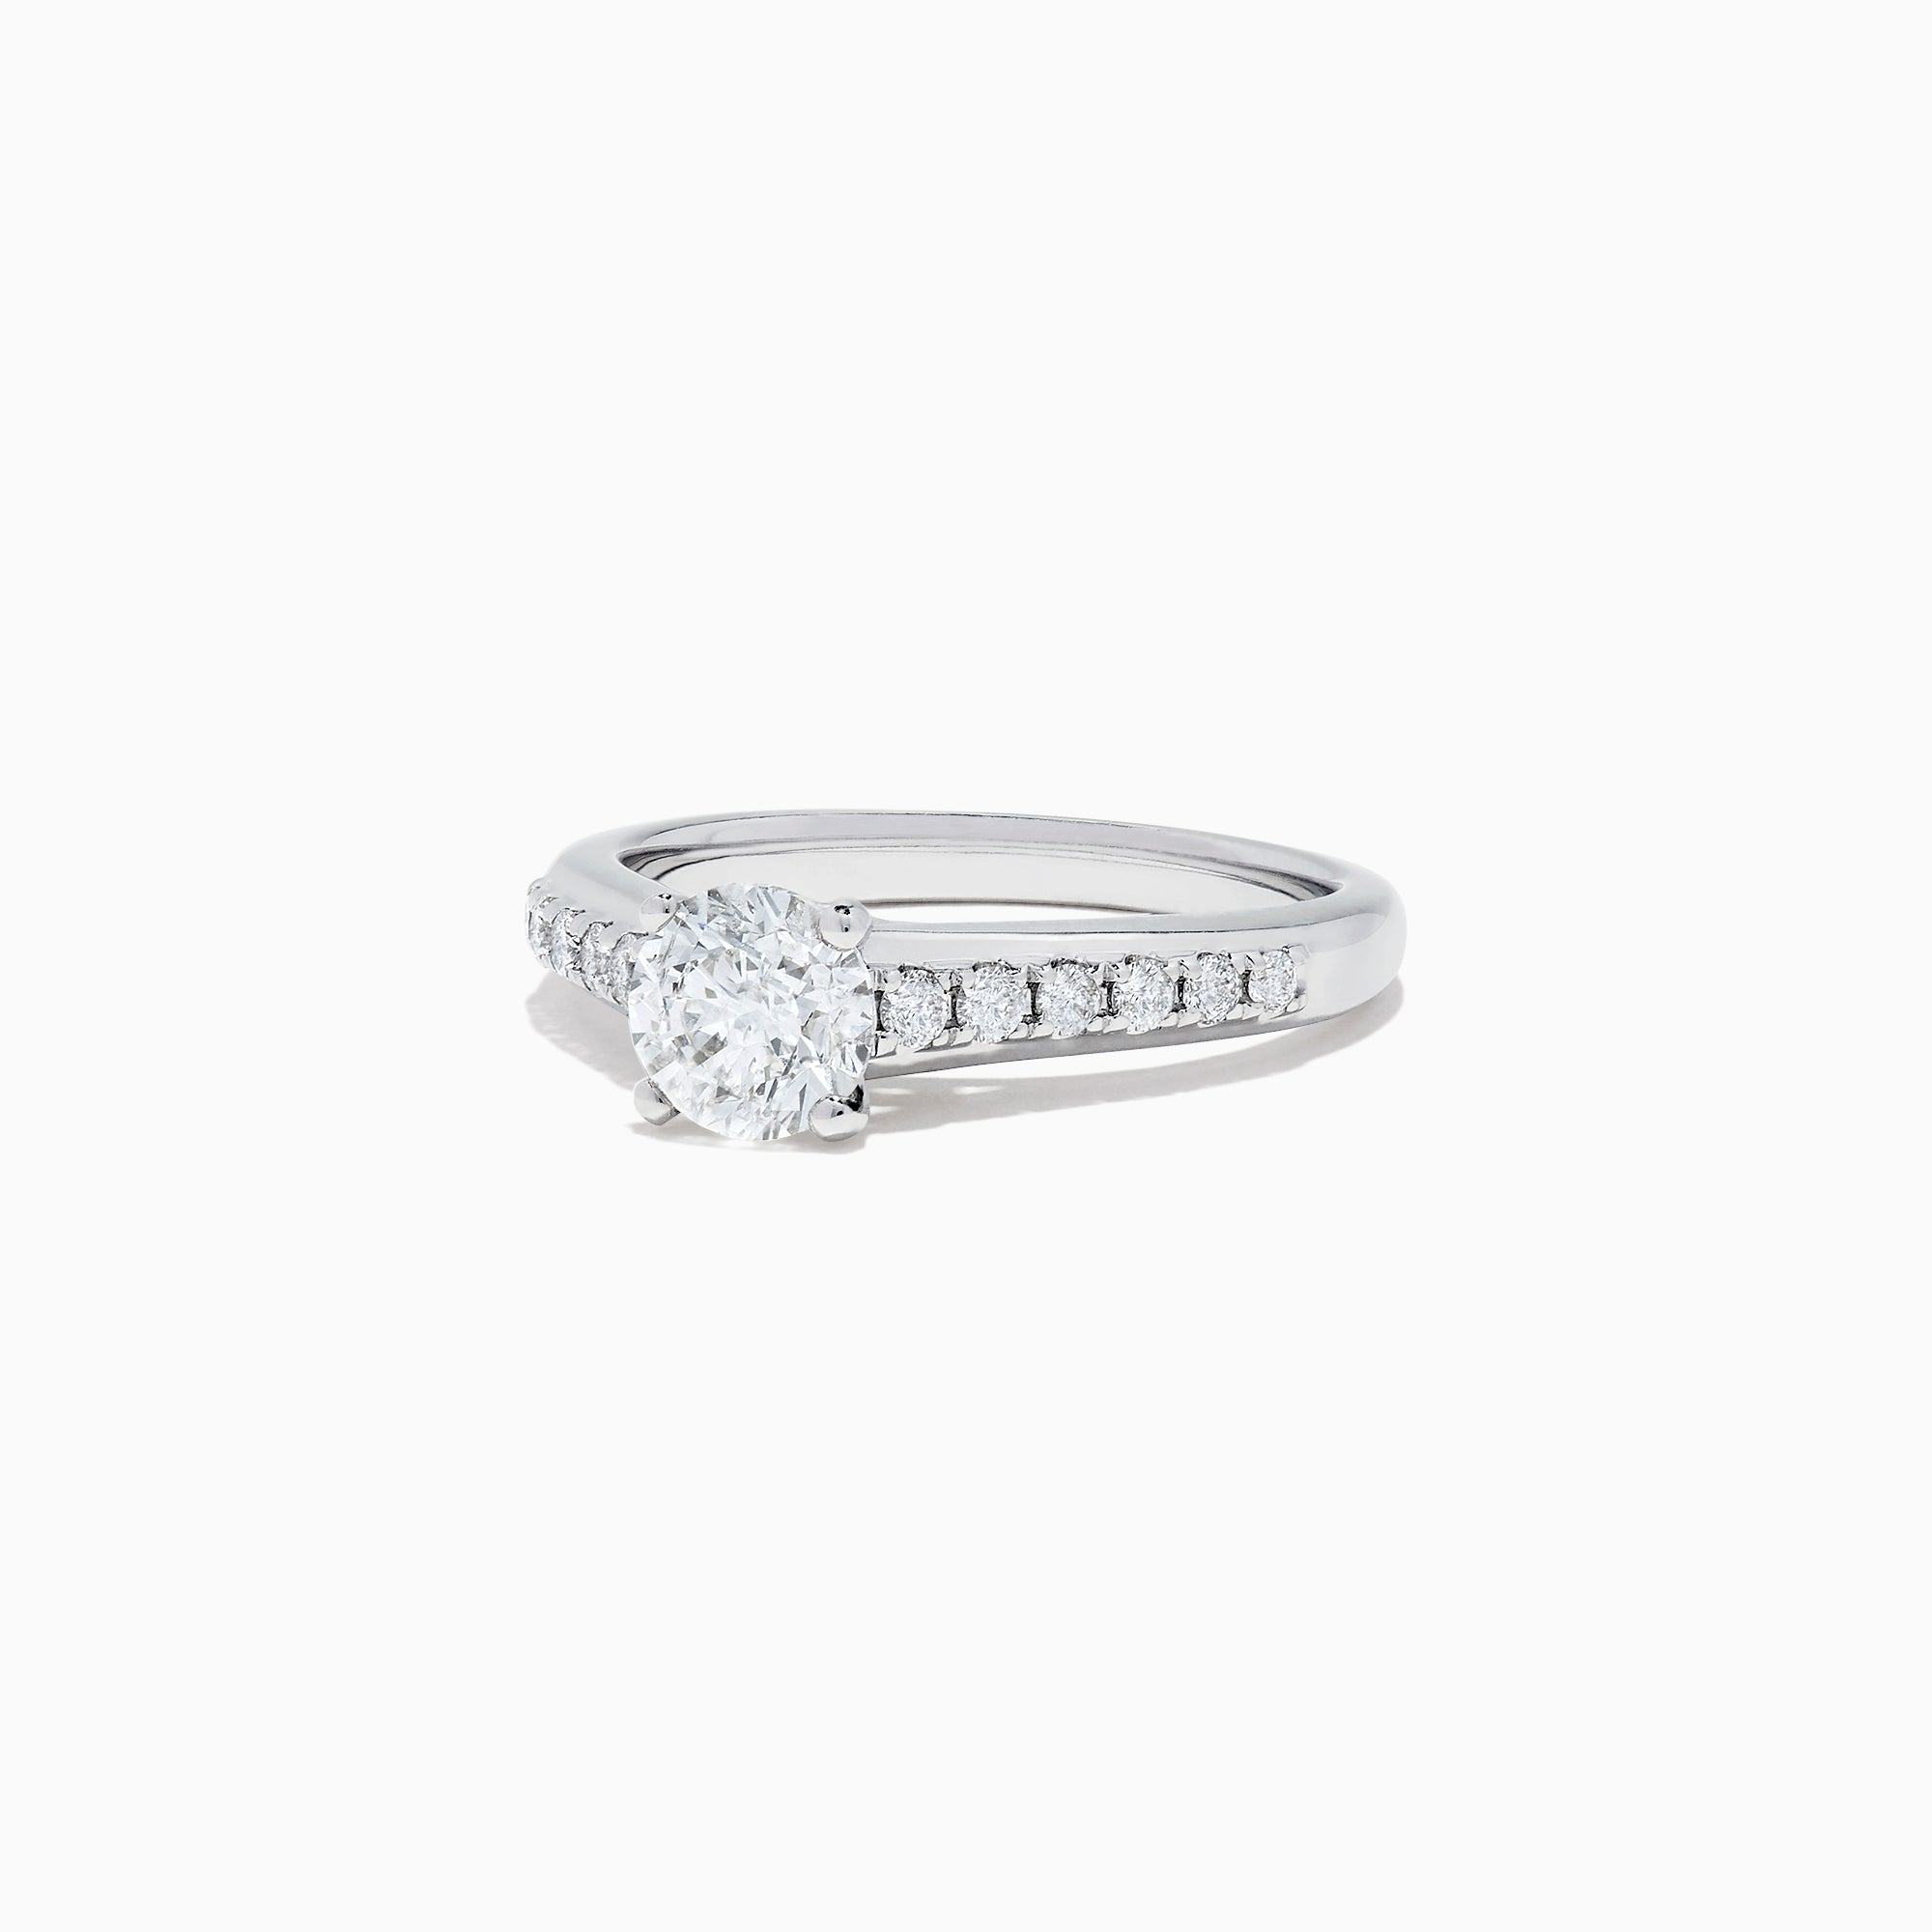 Effy Bridal 18K White Gold Diamond Solitaire Ring, 1.24 TCW